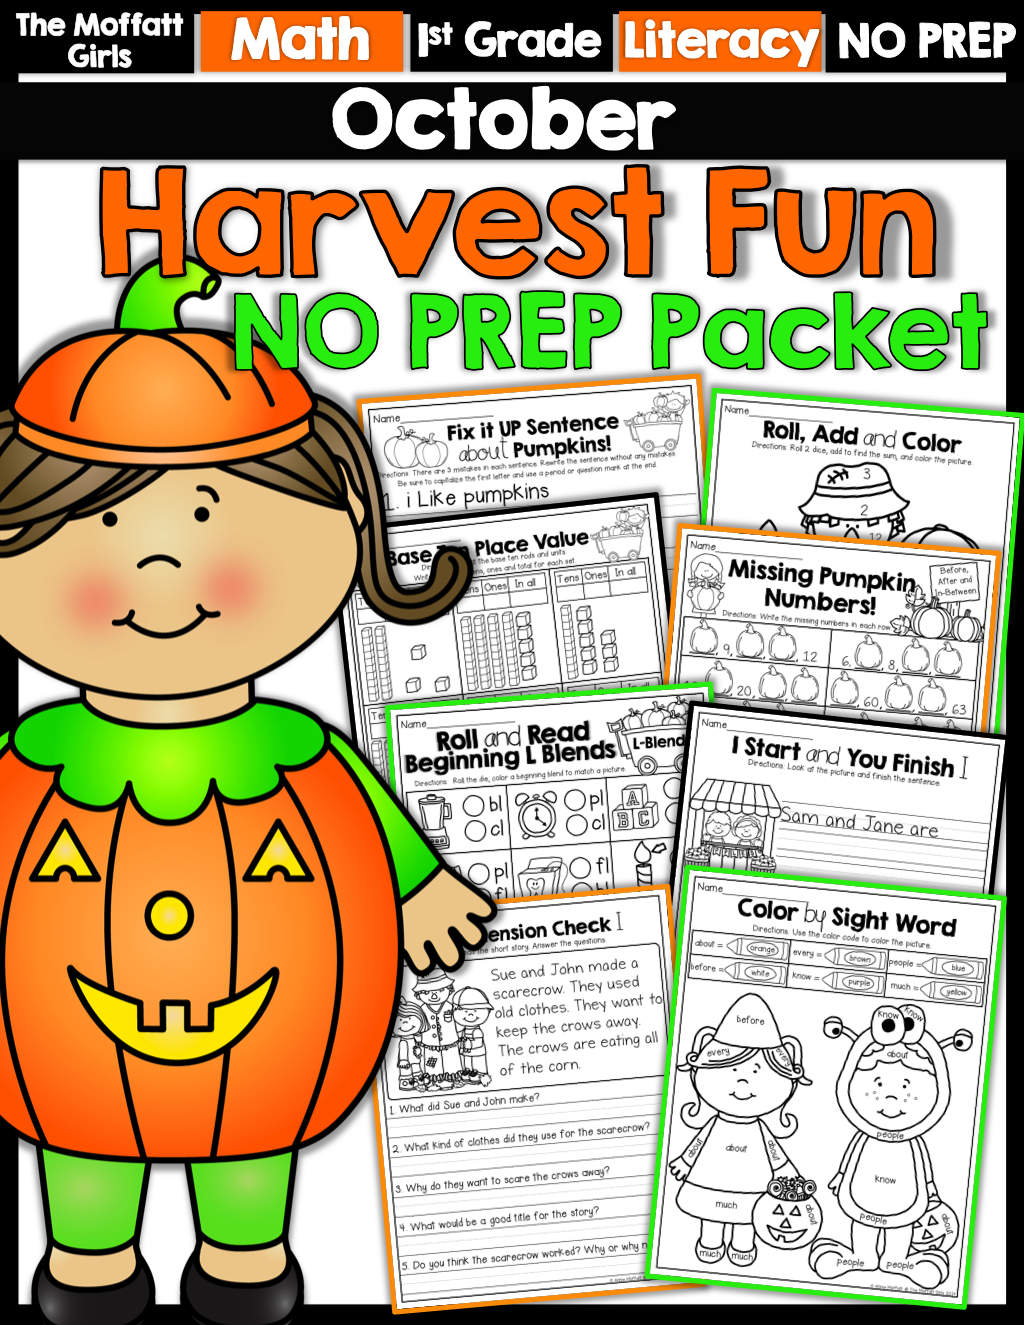 October No Prep Math And Literacy Packet 1st Grade